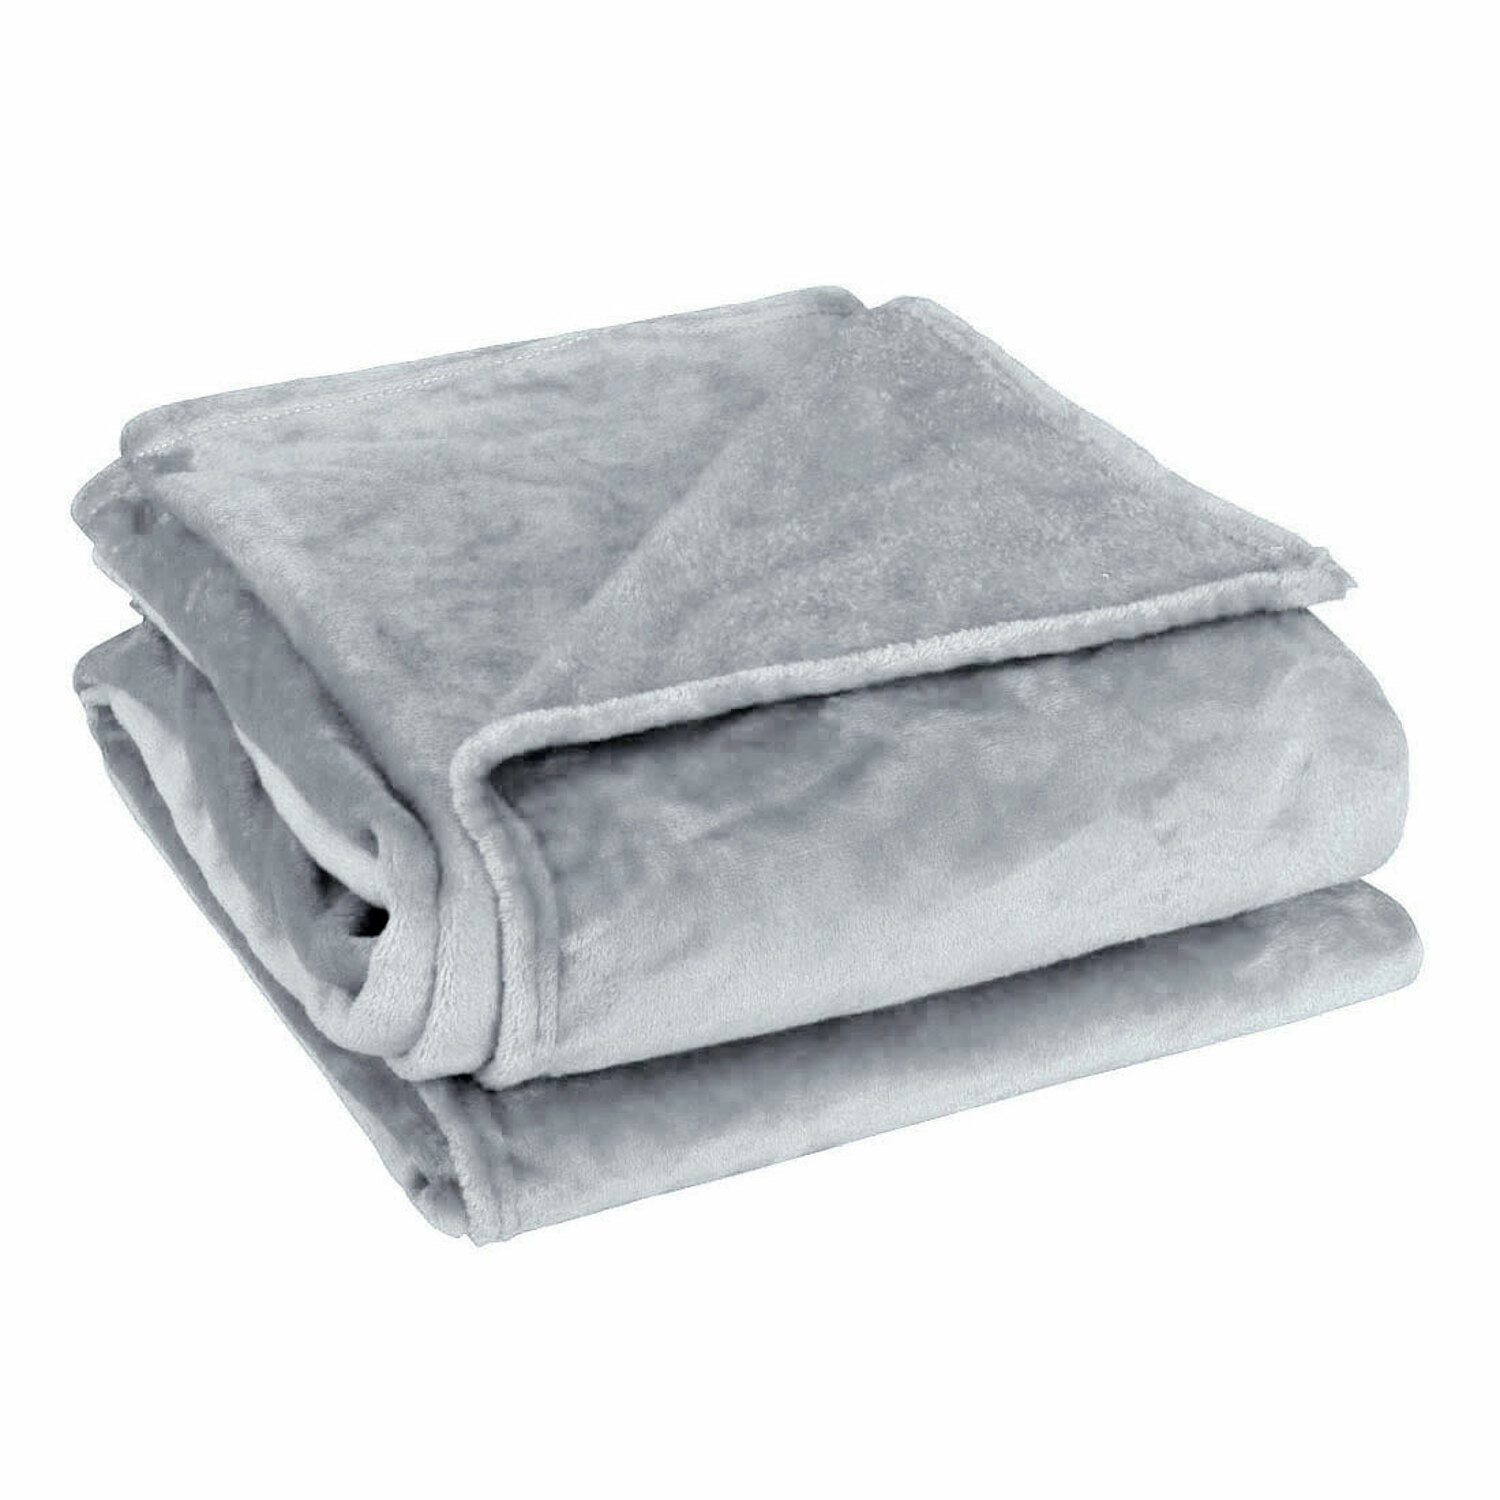 Sofa Warm Soft Polyester Couch Throws Blanket Light Gray Twin Size 150 x 200cm